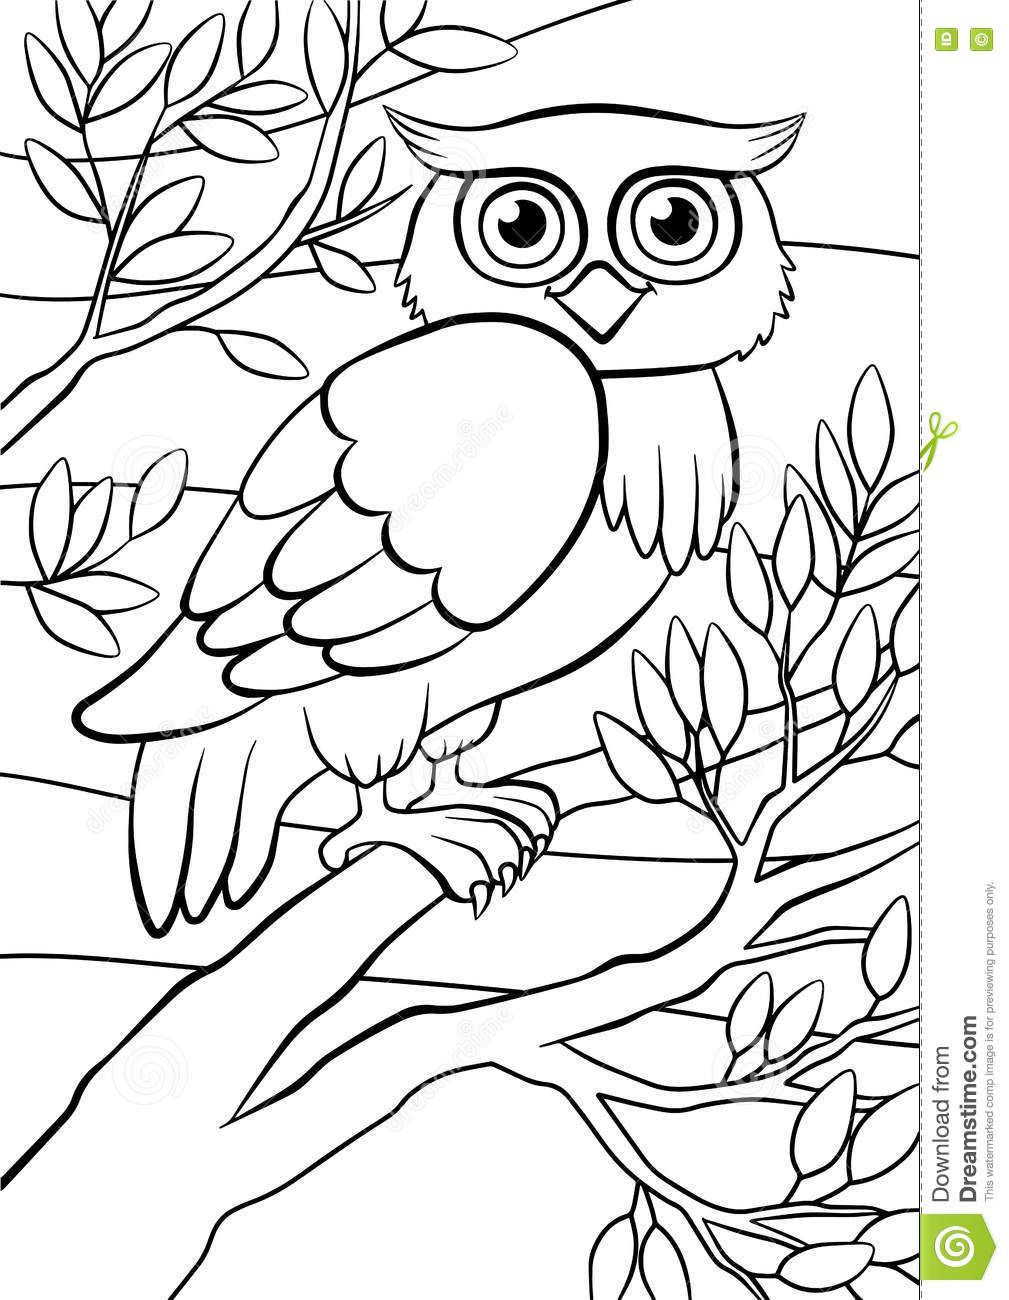 Grab Your New Coloring Pages Birds Download Https Gethighit Com New Coloring Pages Birds Downl Owl Coloring Pages Bird Coloring Pages Animal Coloring Pages [ 1300 x 1009 Pixel ]